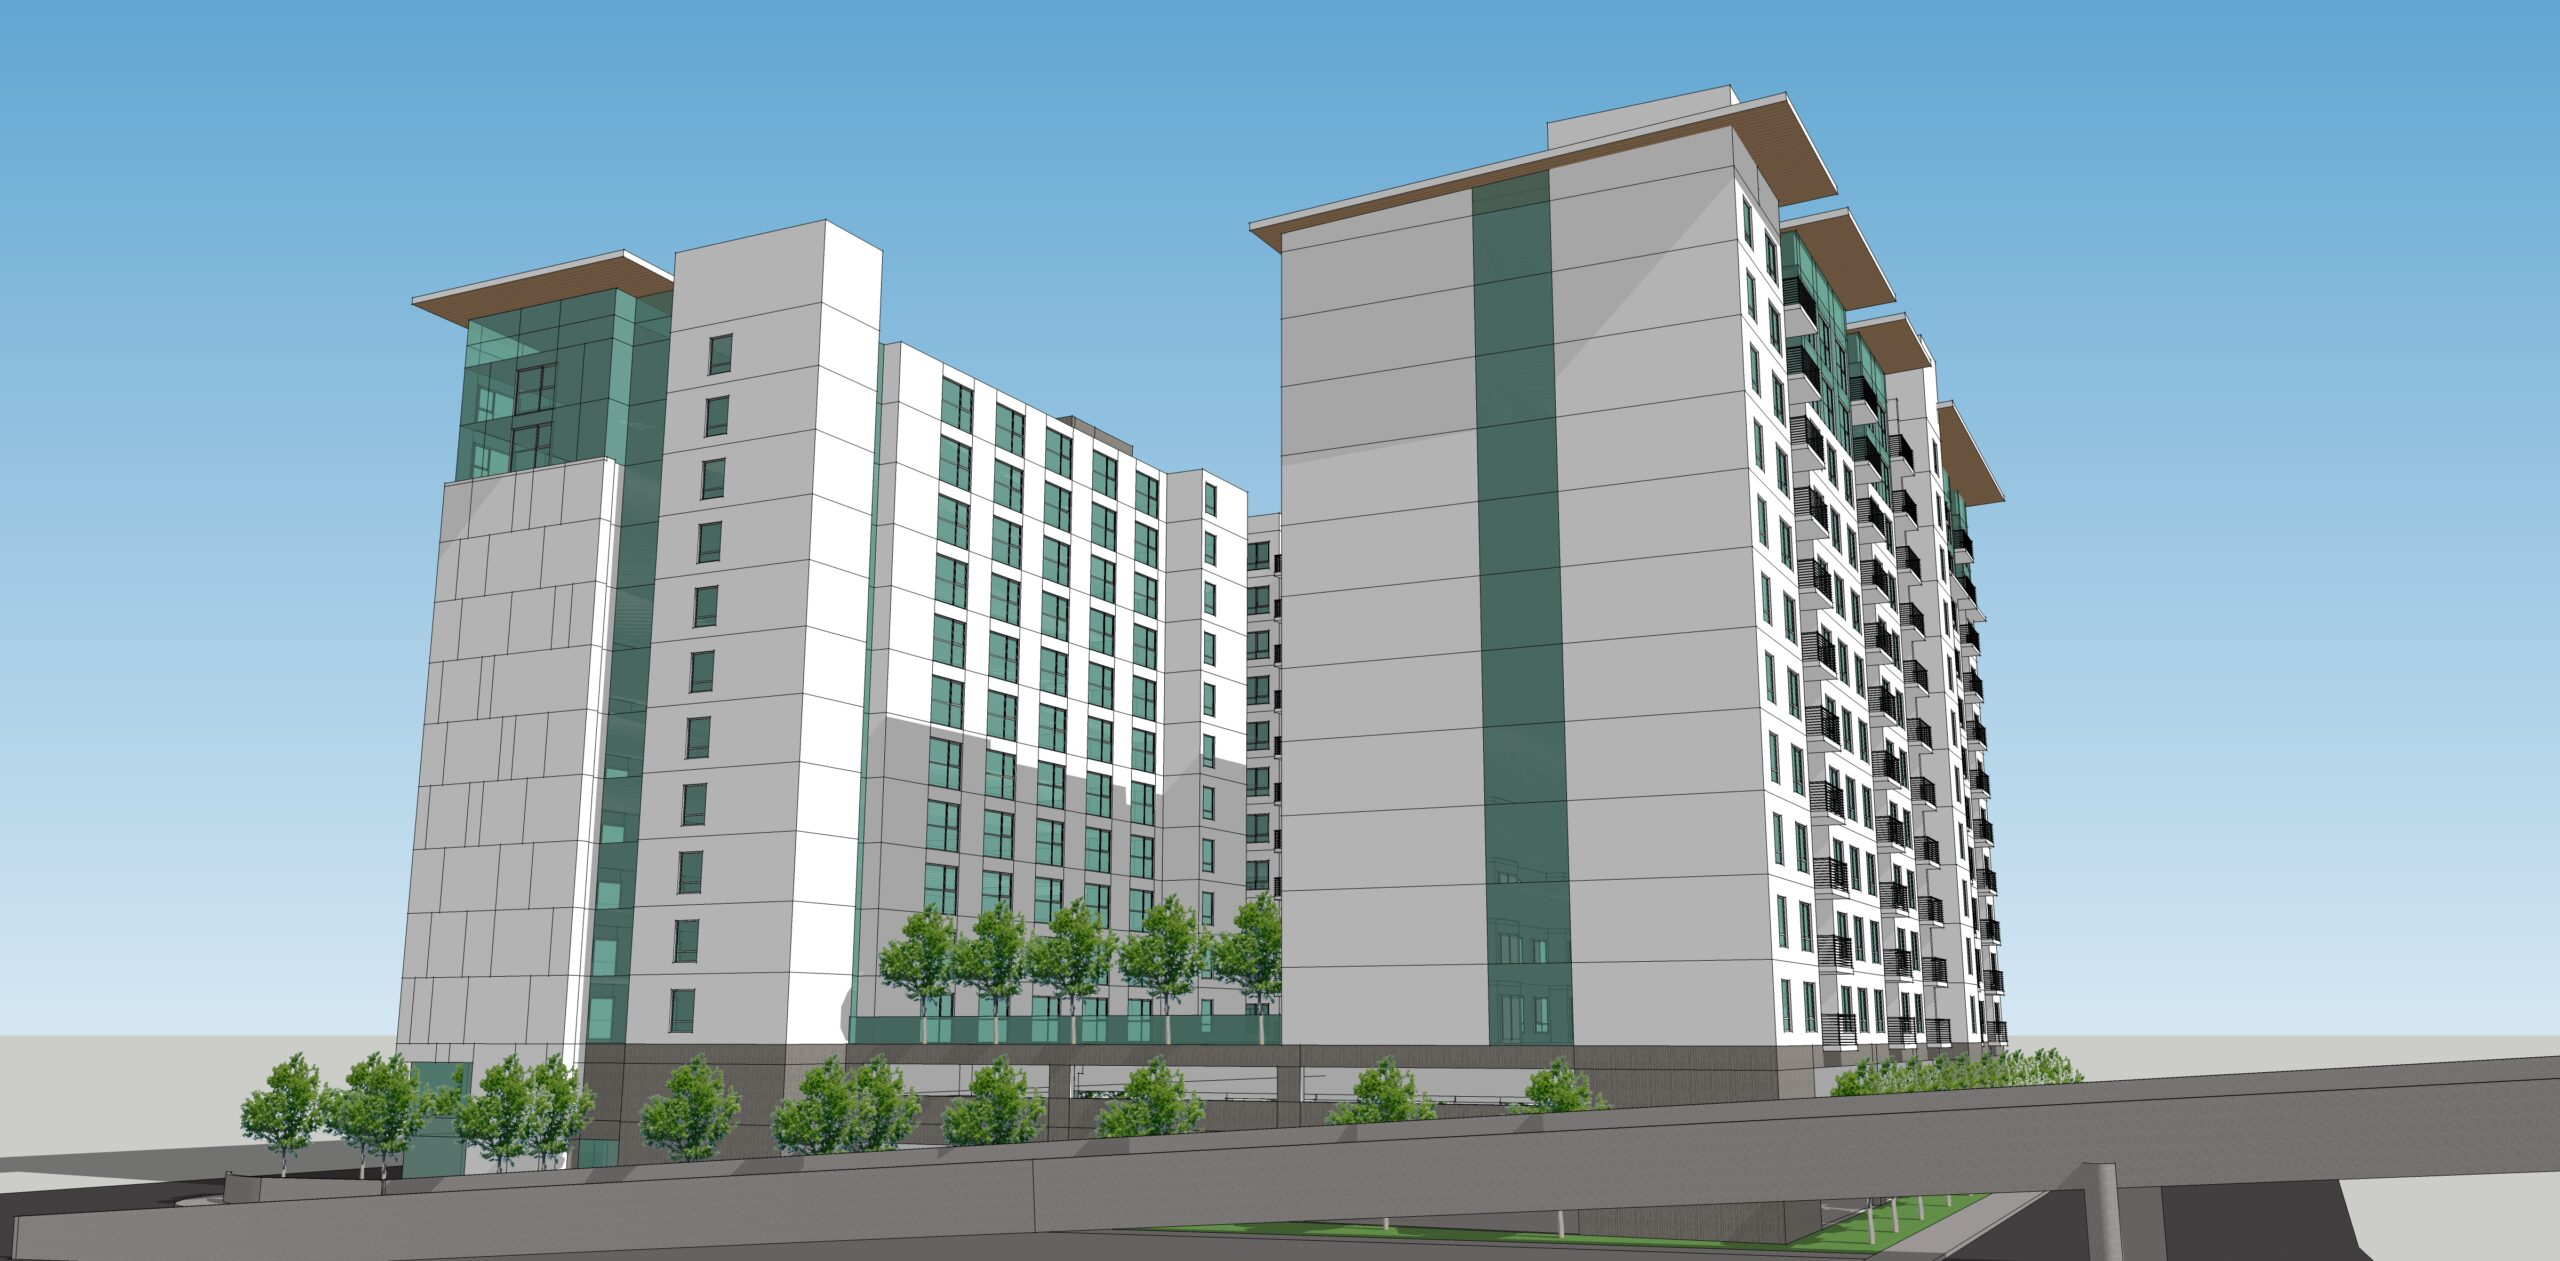 McEvoy Apartments preliminary concept